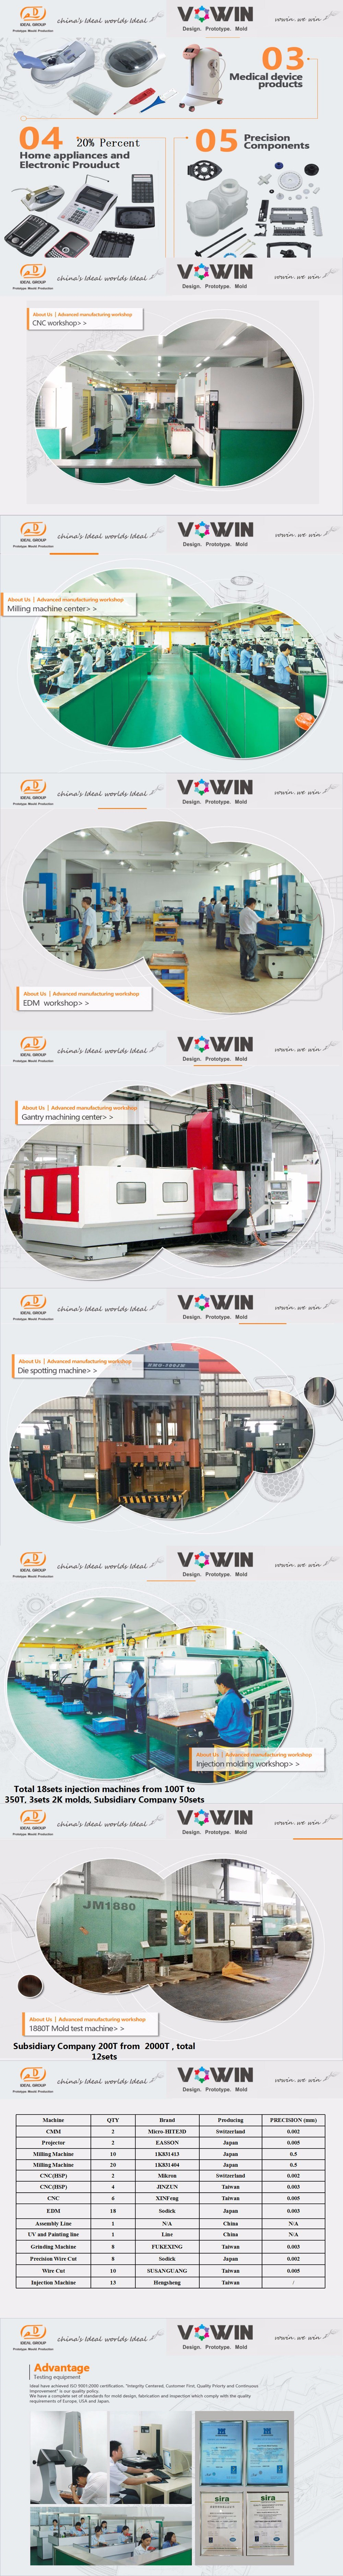 Extract Automotive Auto Parts Mould Manufacturer in Shenzhen